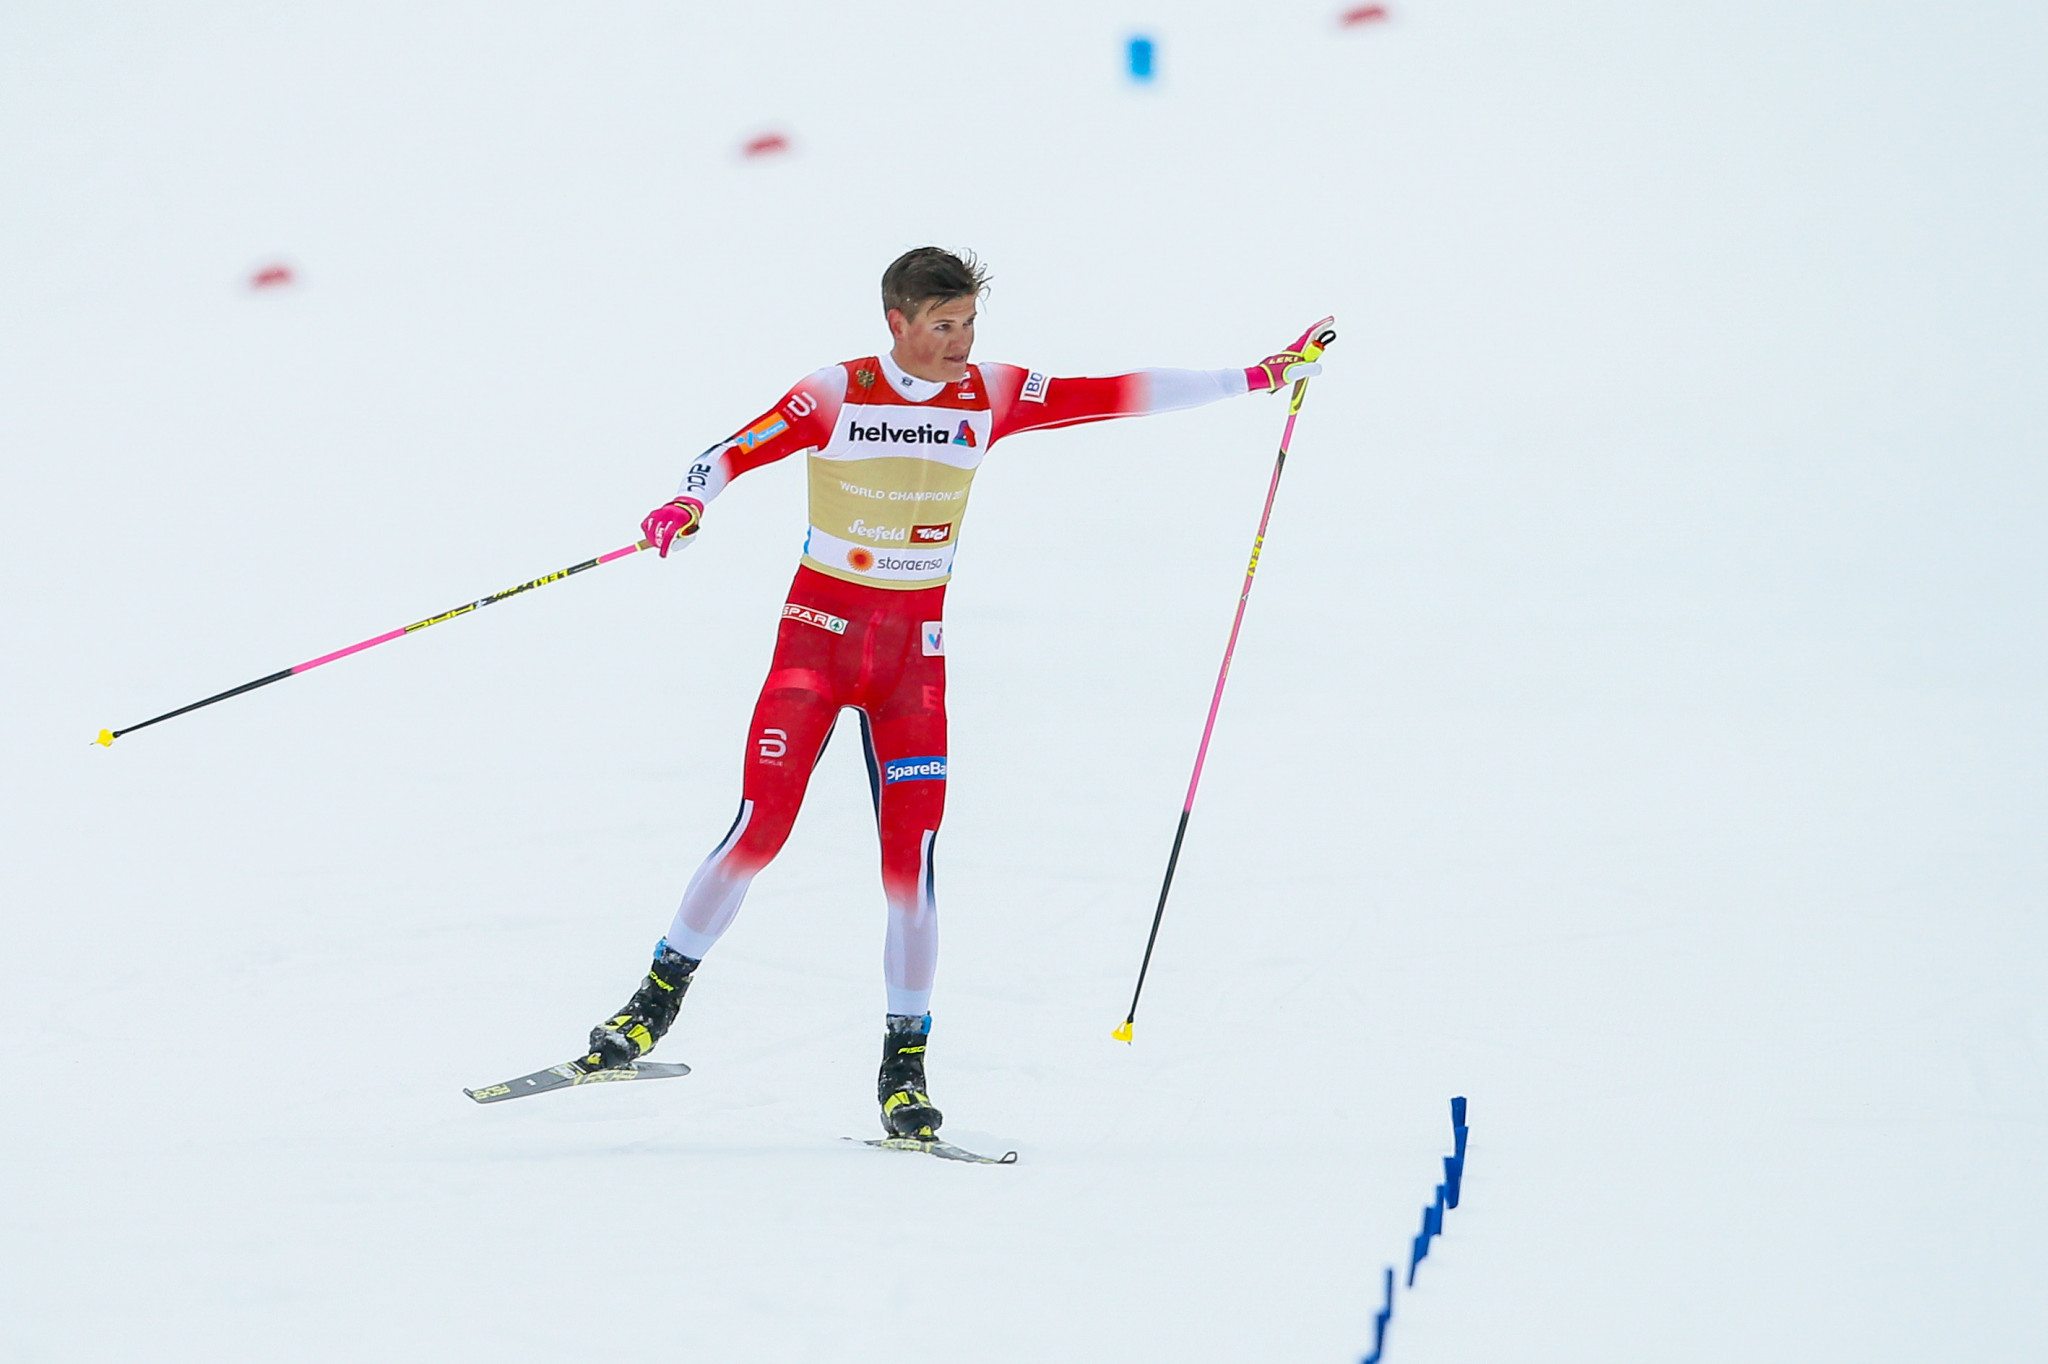 Klæbo and Østberg out to secure overall titles at FIS Cross-Country World Cup final